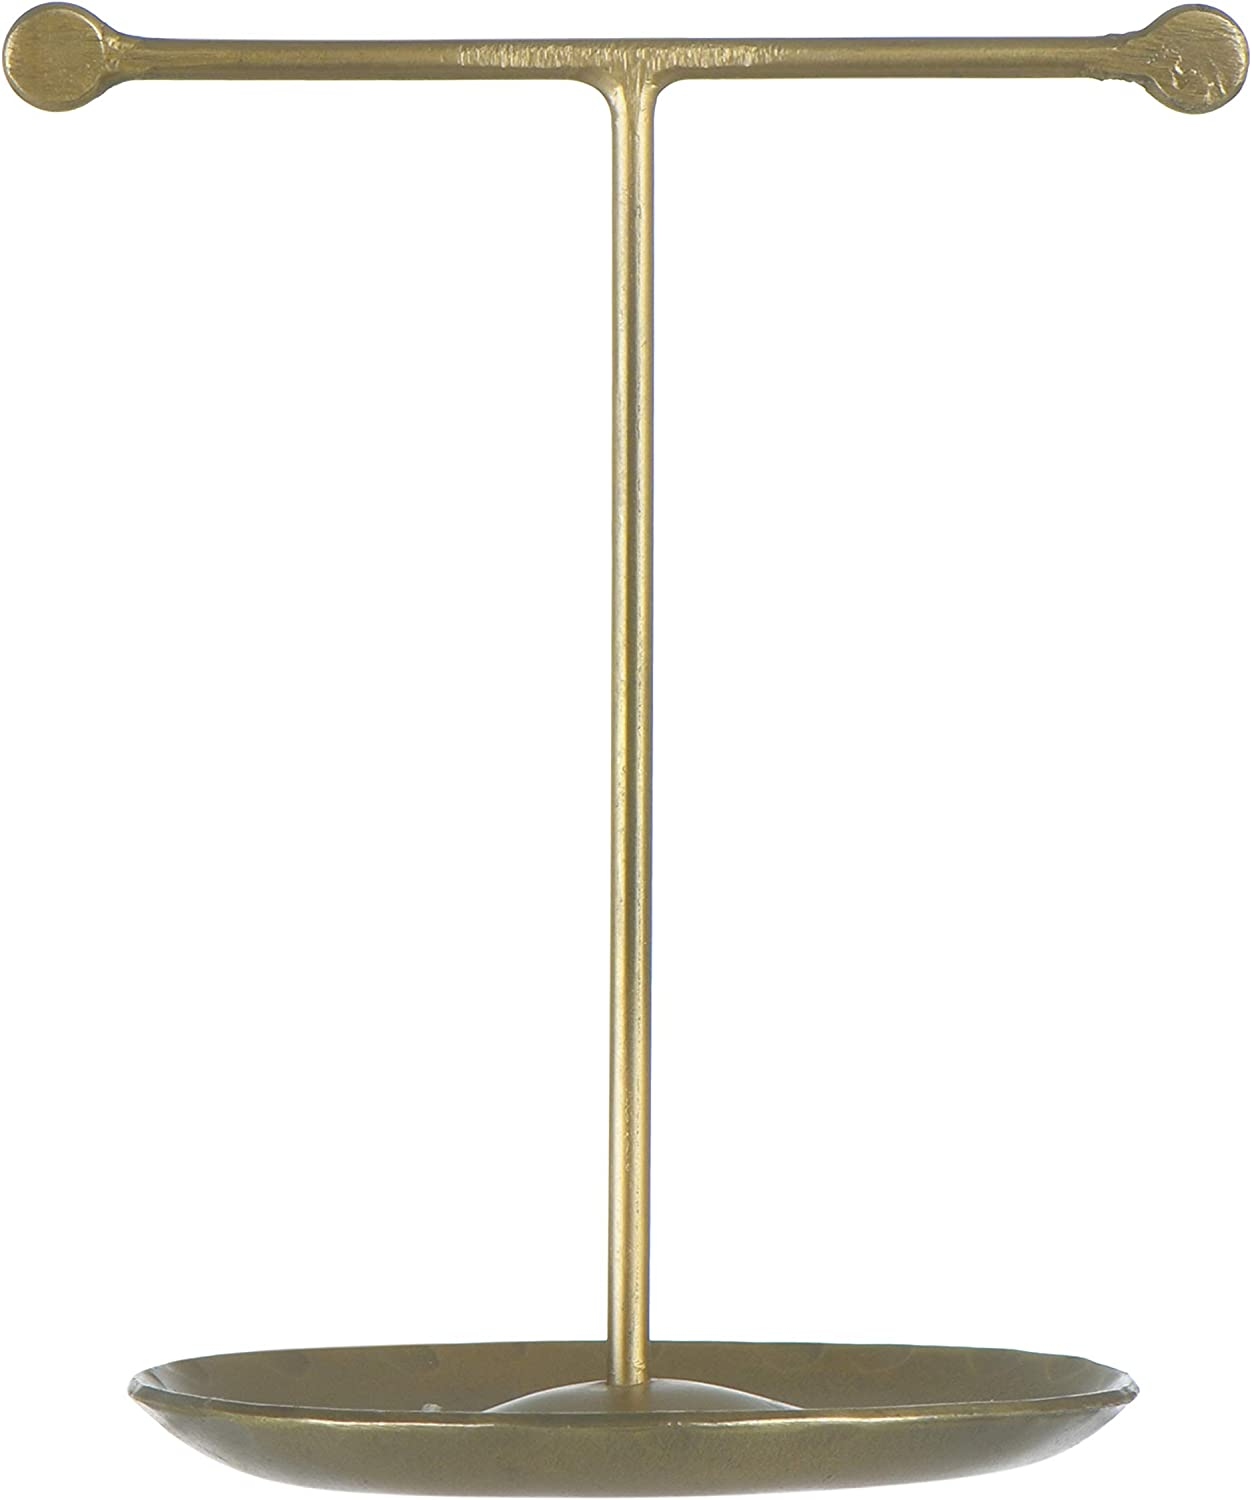 Creative Co-op Metal Antique Brass Finish Jewelry Stand, Bronze